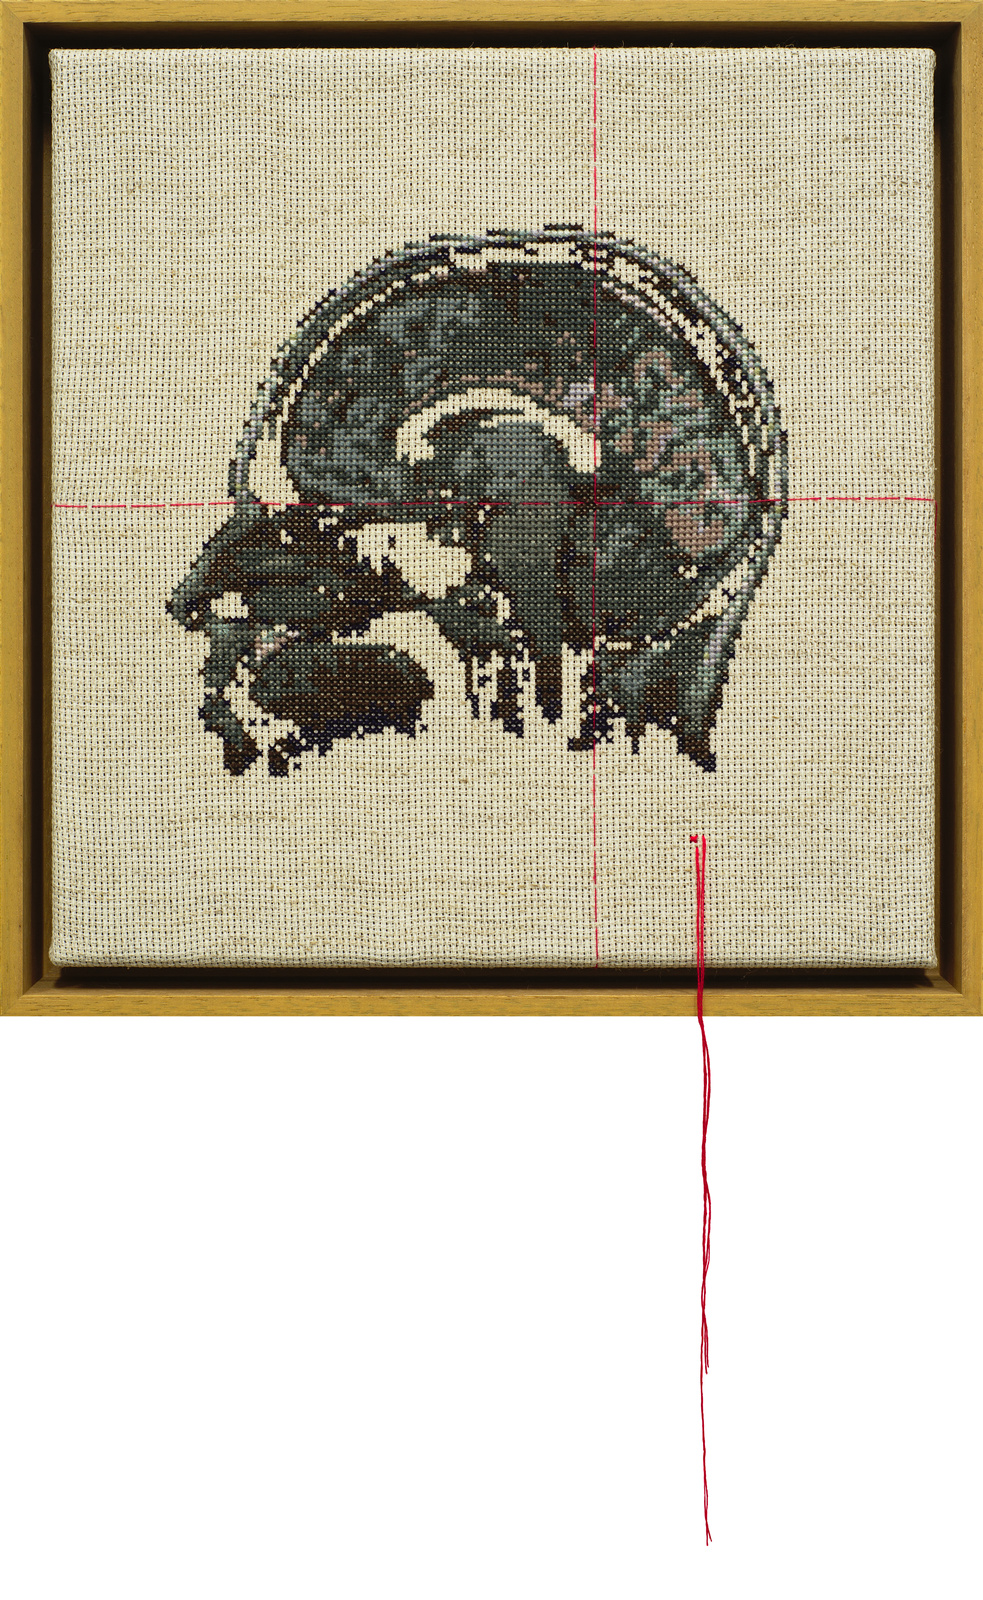 Self Portrait; Artist's Brain Stranded cotton on aida cloth, 2010 300 x 290 mm    photo Bob Newman